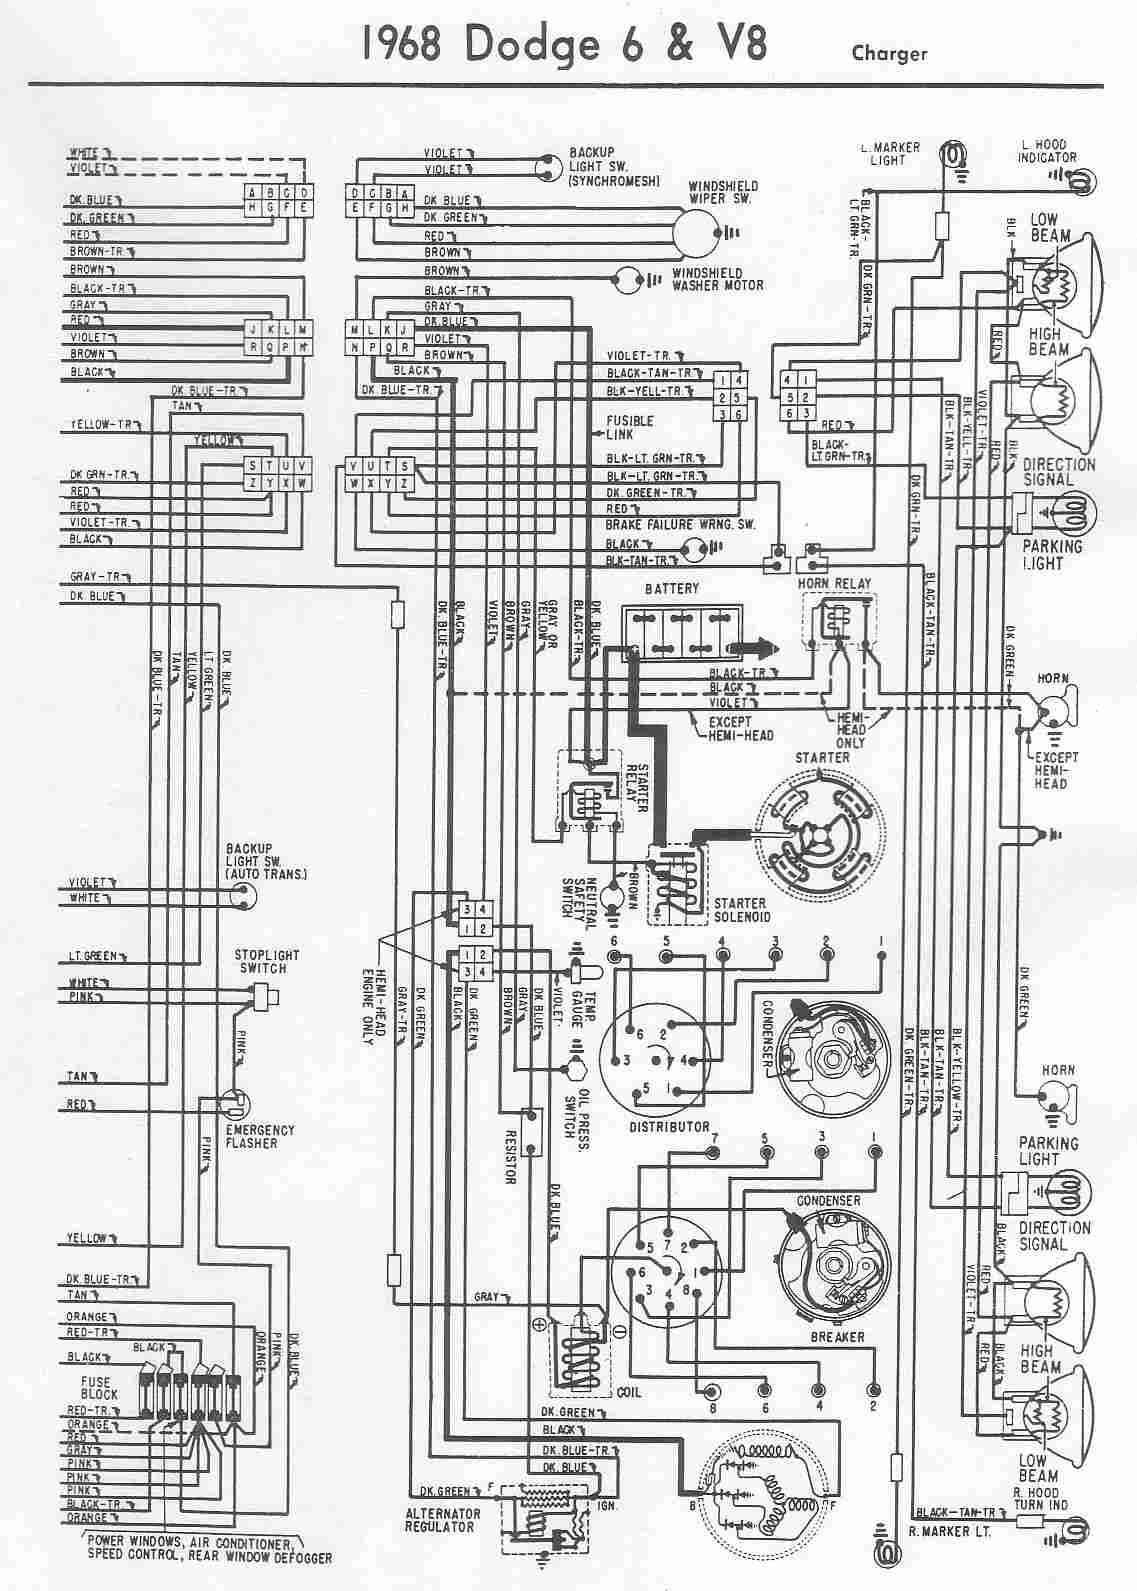 Dodge Car Manuals Wiring Diagrams Pdf Fault Codes 1980 Club Diagram Download